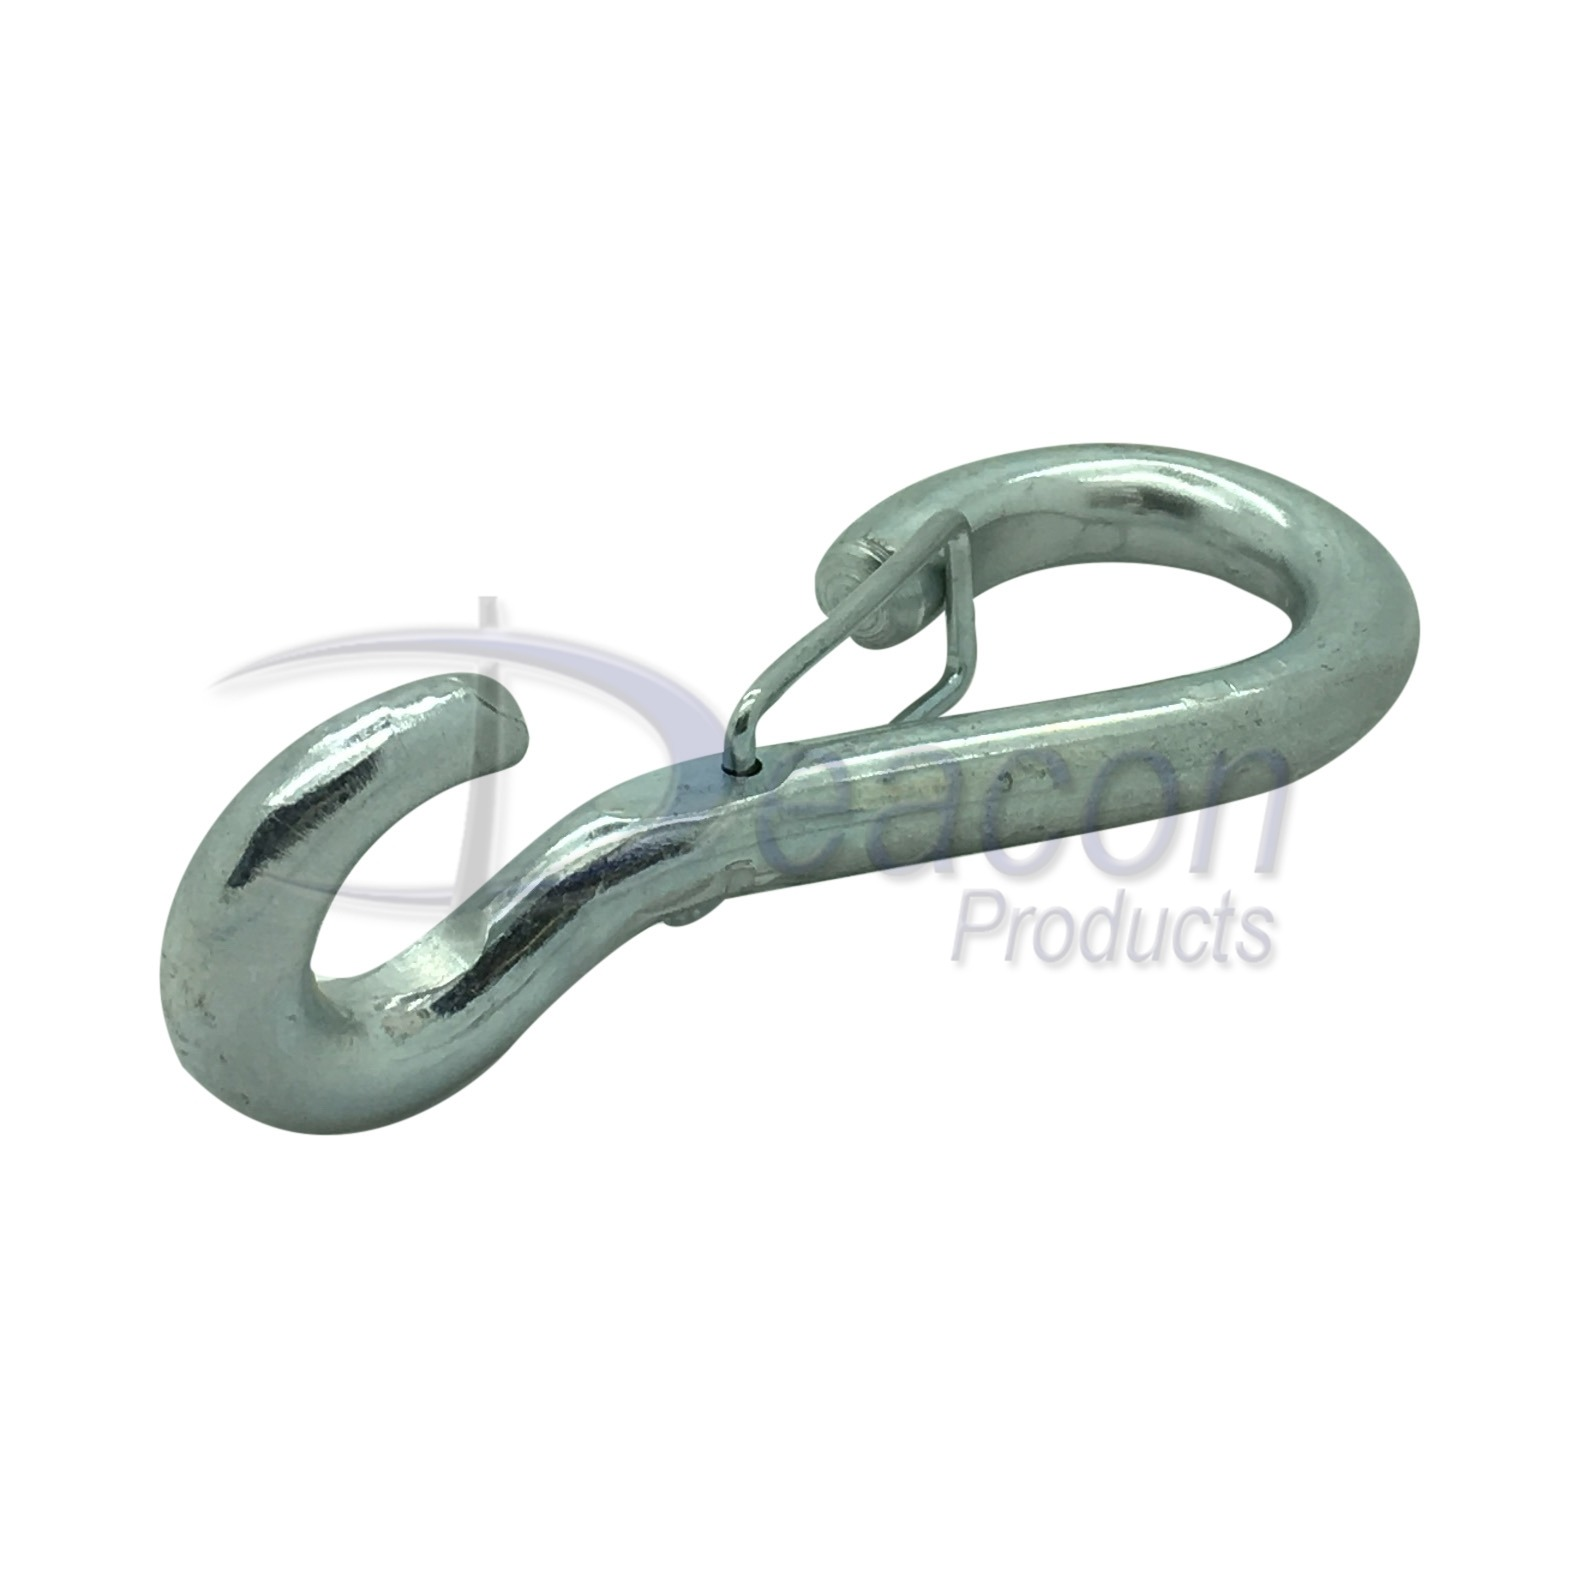 zinc-plated-spring-hook-to-crue-wire-catch